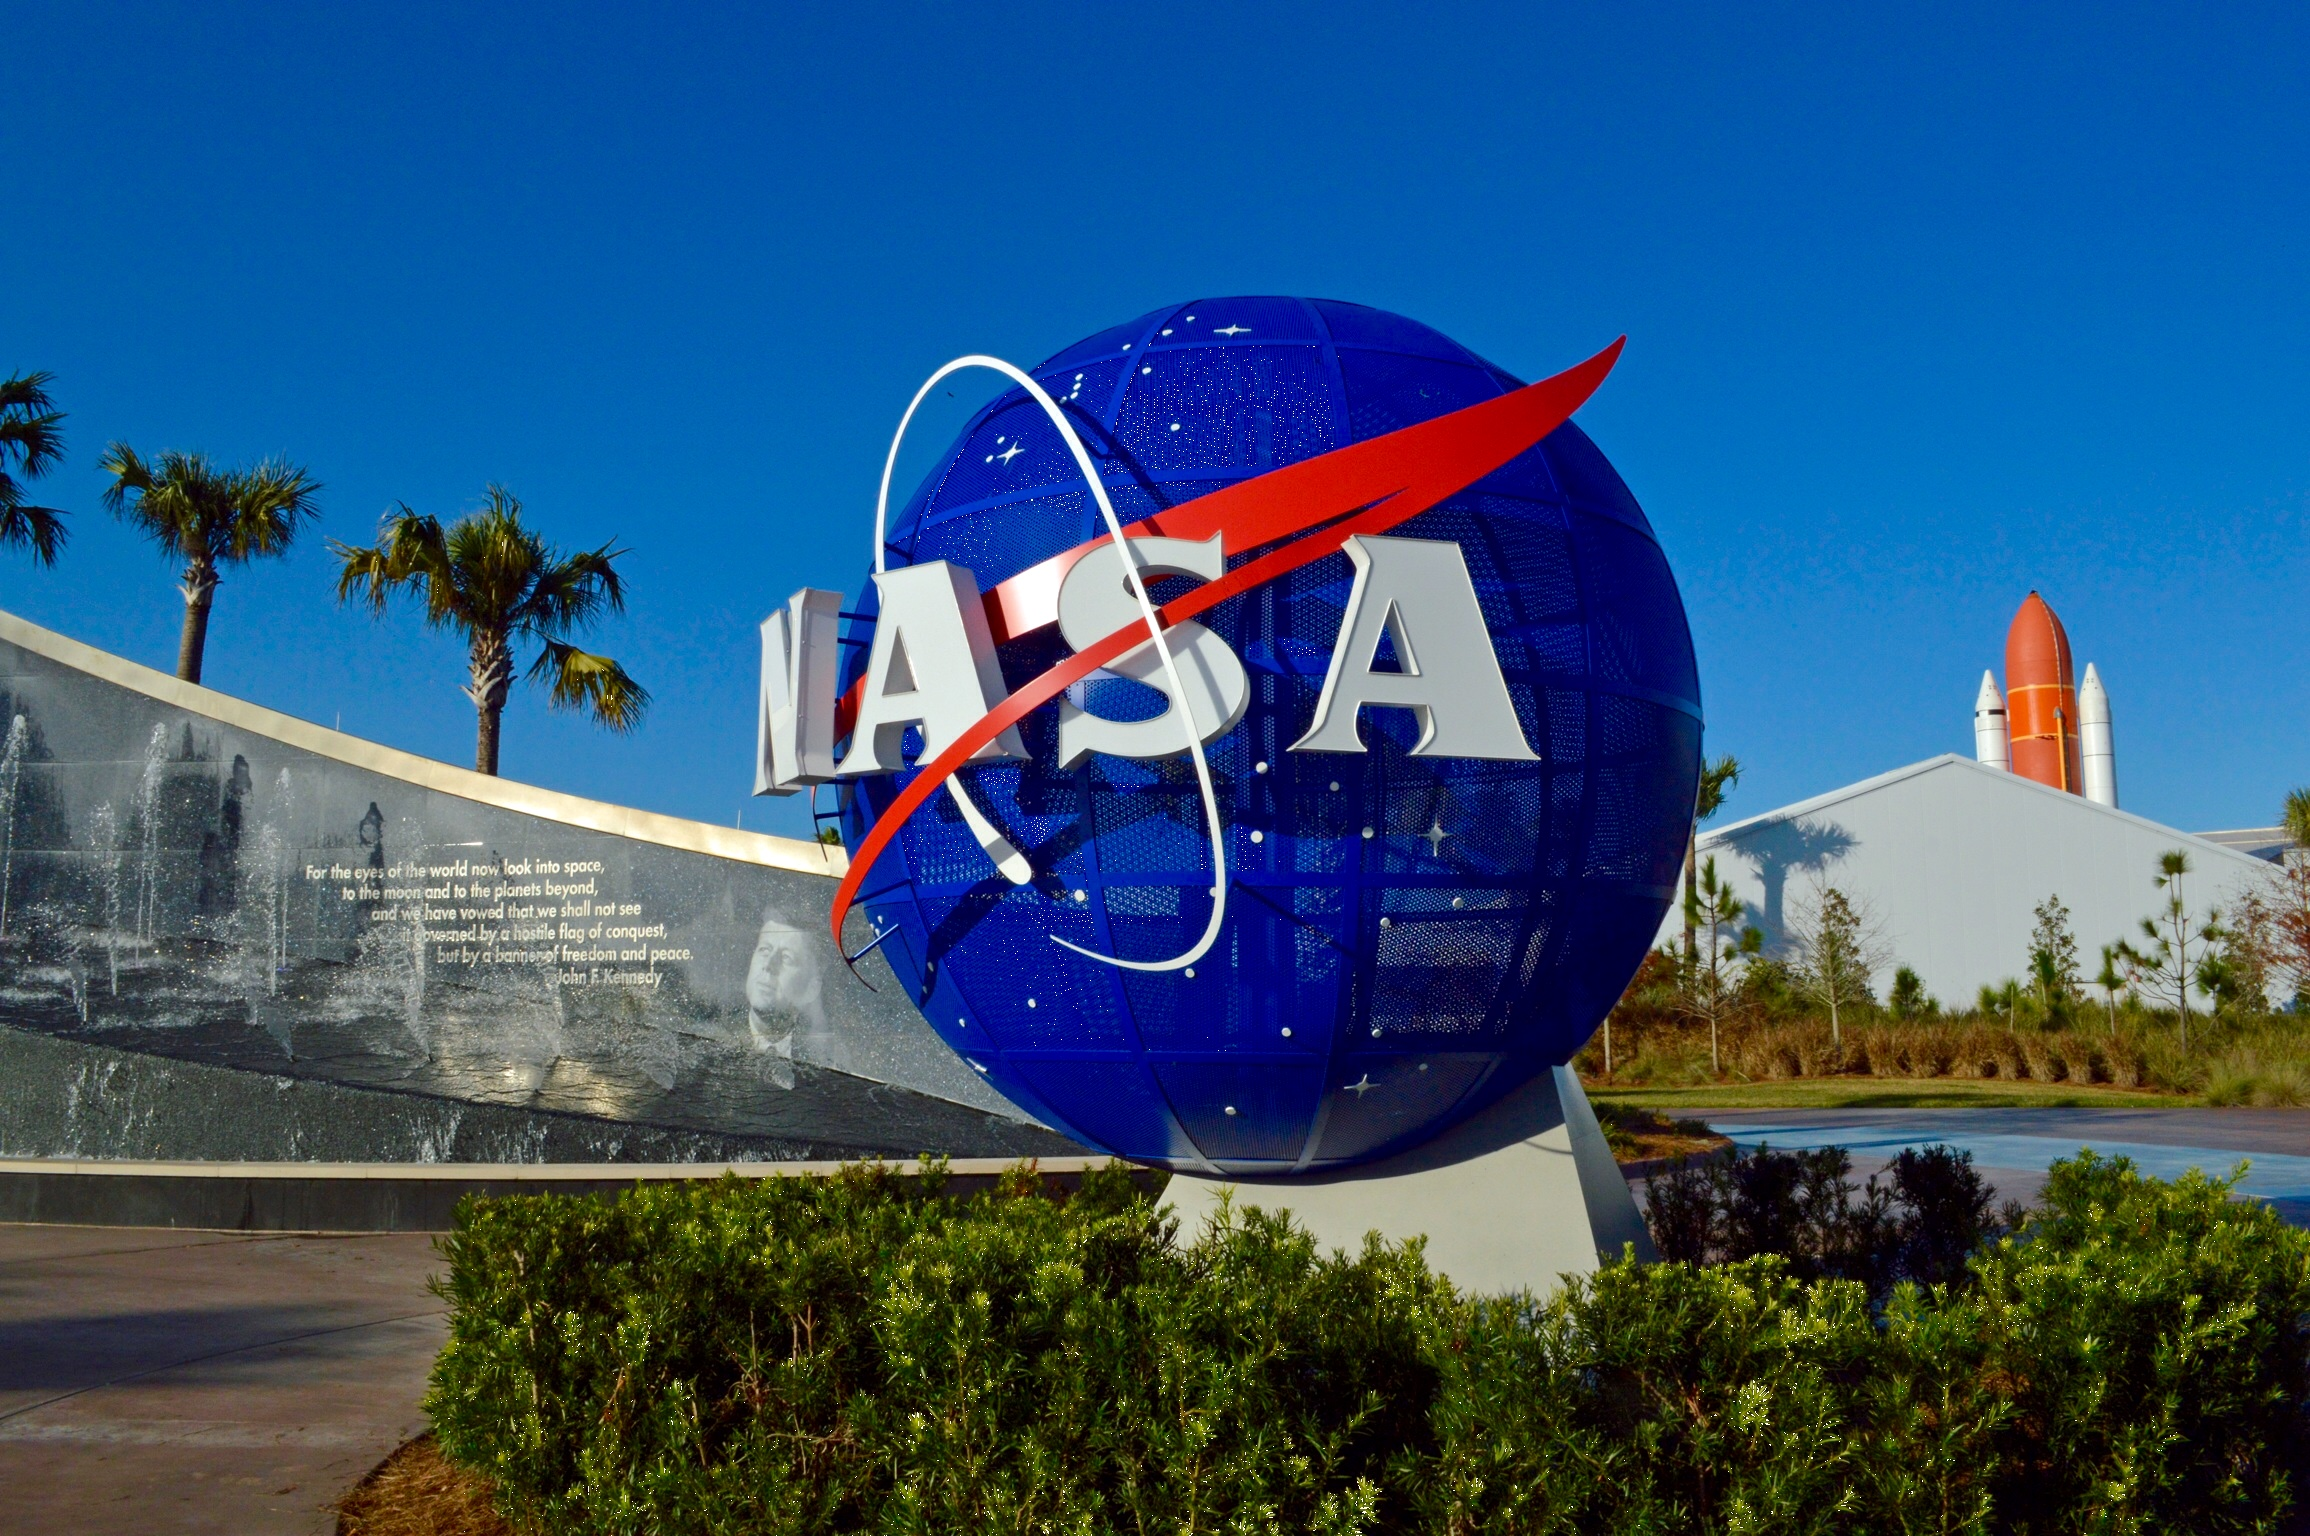 NASA logo is seen at the Kennedy Space Center in Florida.